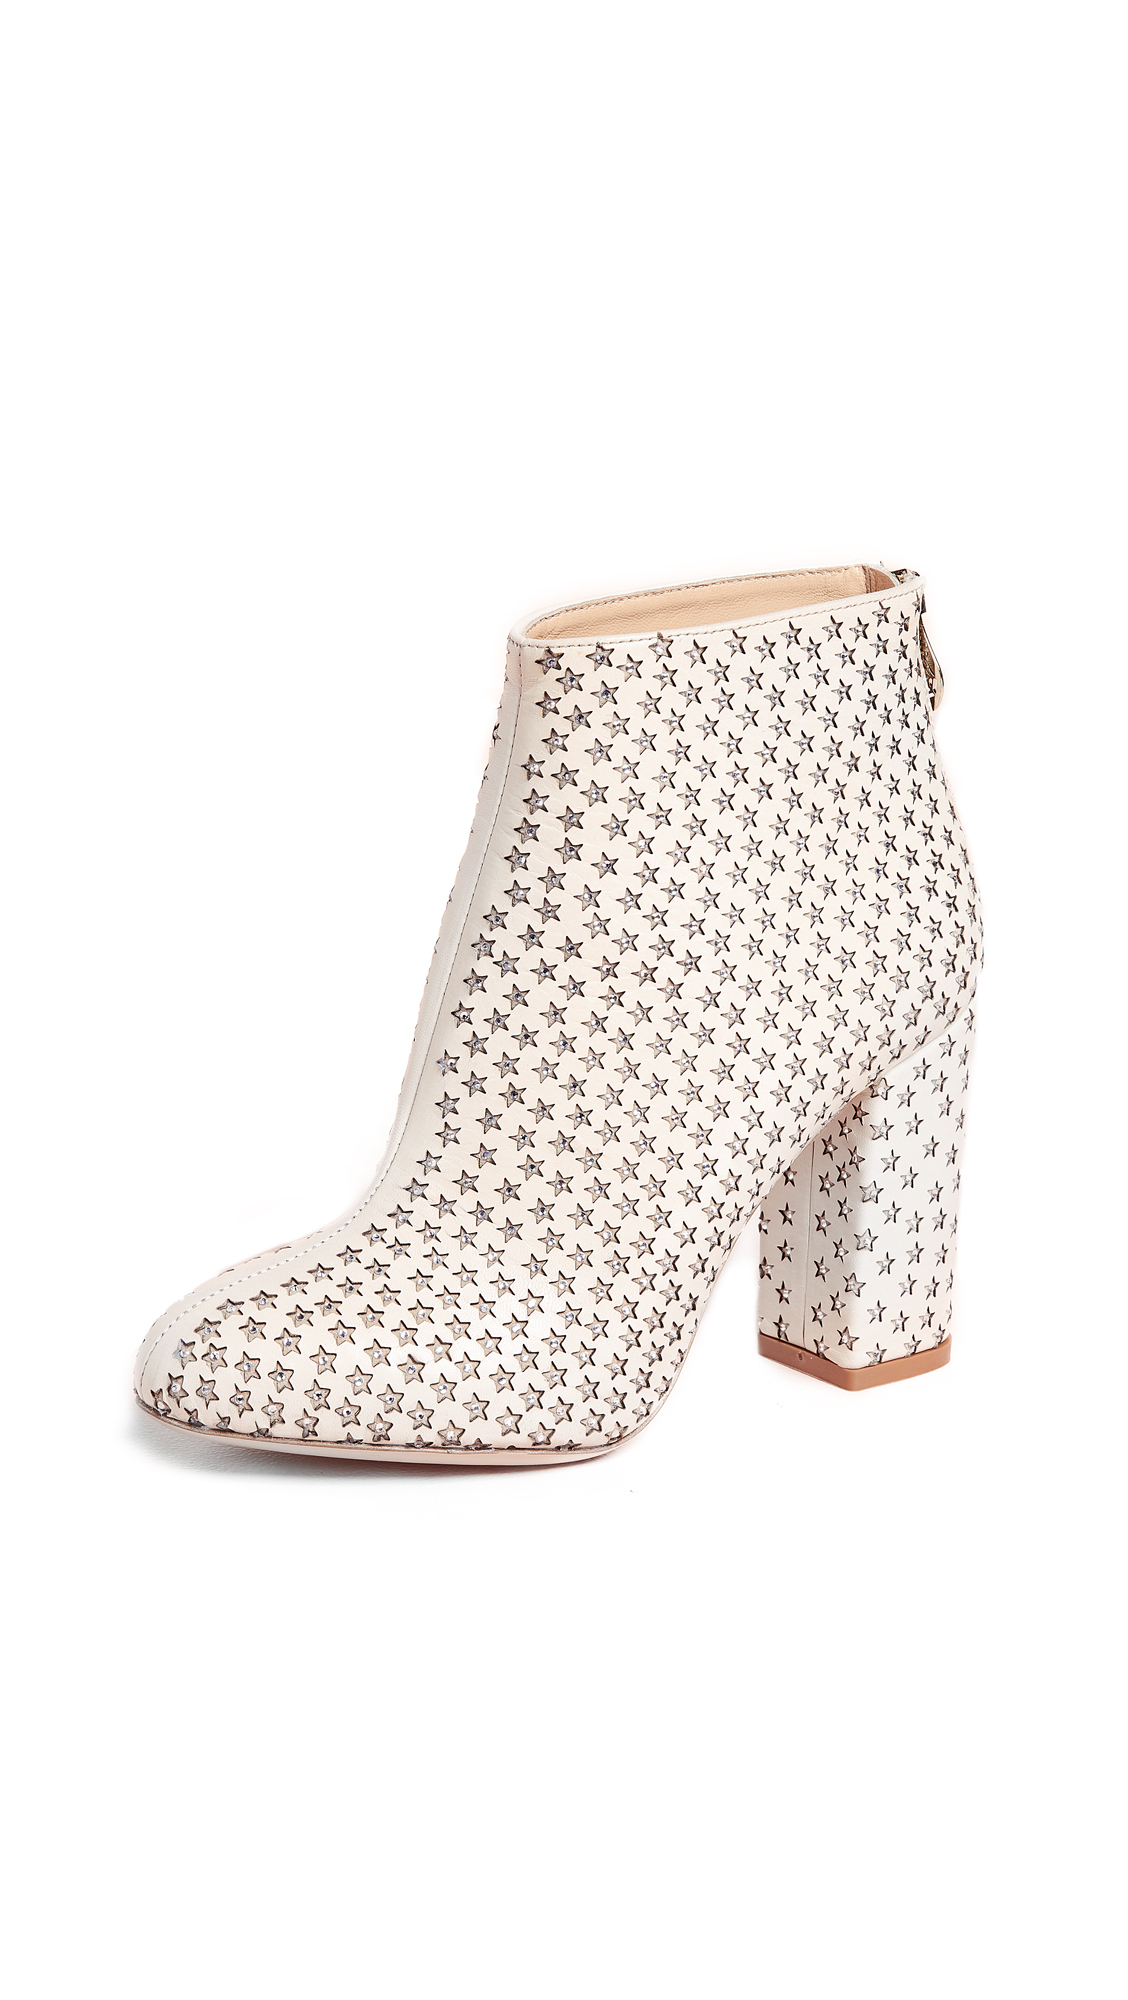 Charlotte Olympia Sparkling Star Booties - Antique White